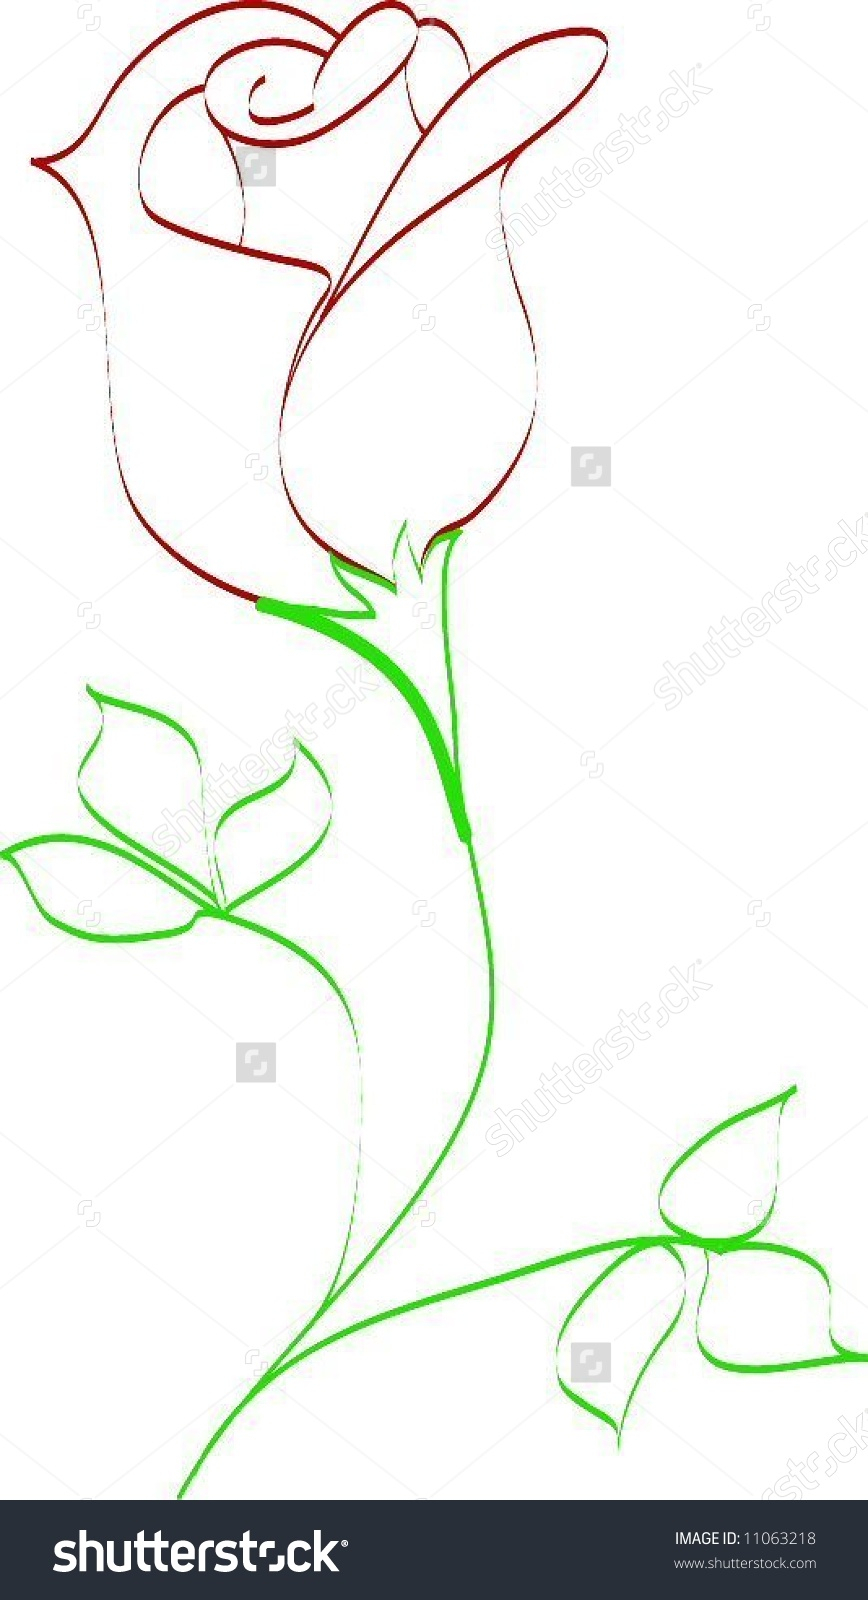 868x1600 Drawing A Rose Bud Simple Line Drawing Rose Bud Stock Vector